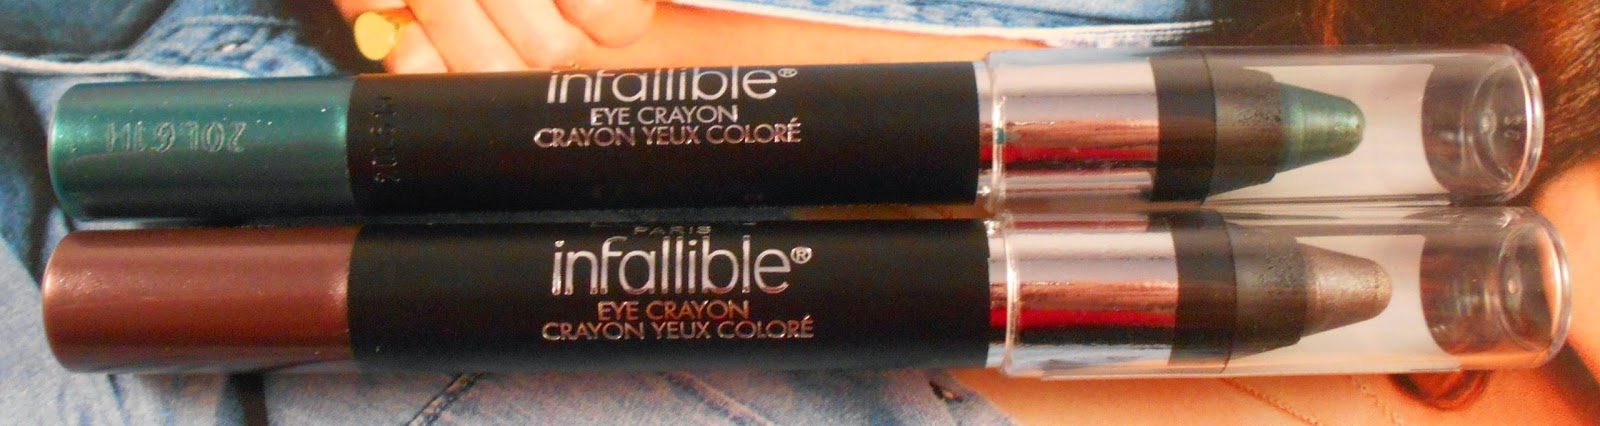 L'Oreal Infallible Eye Crayons